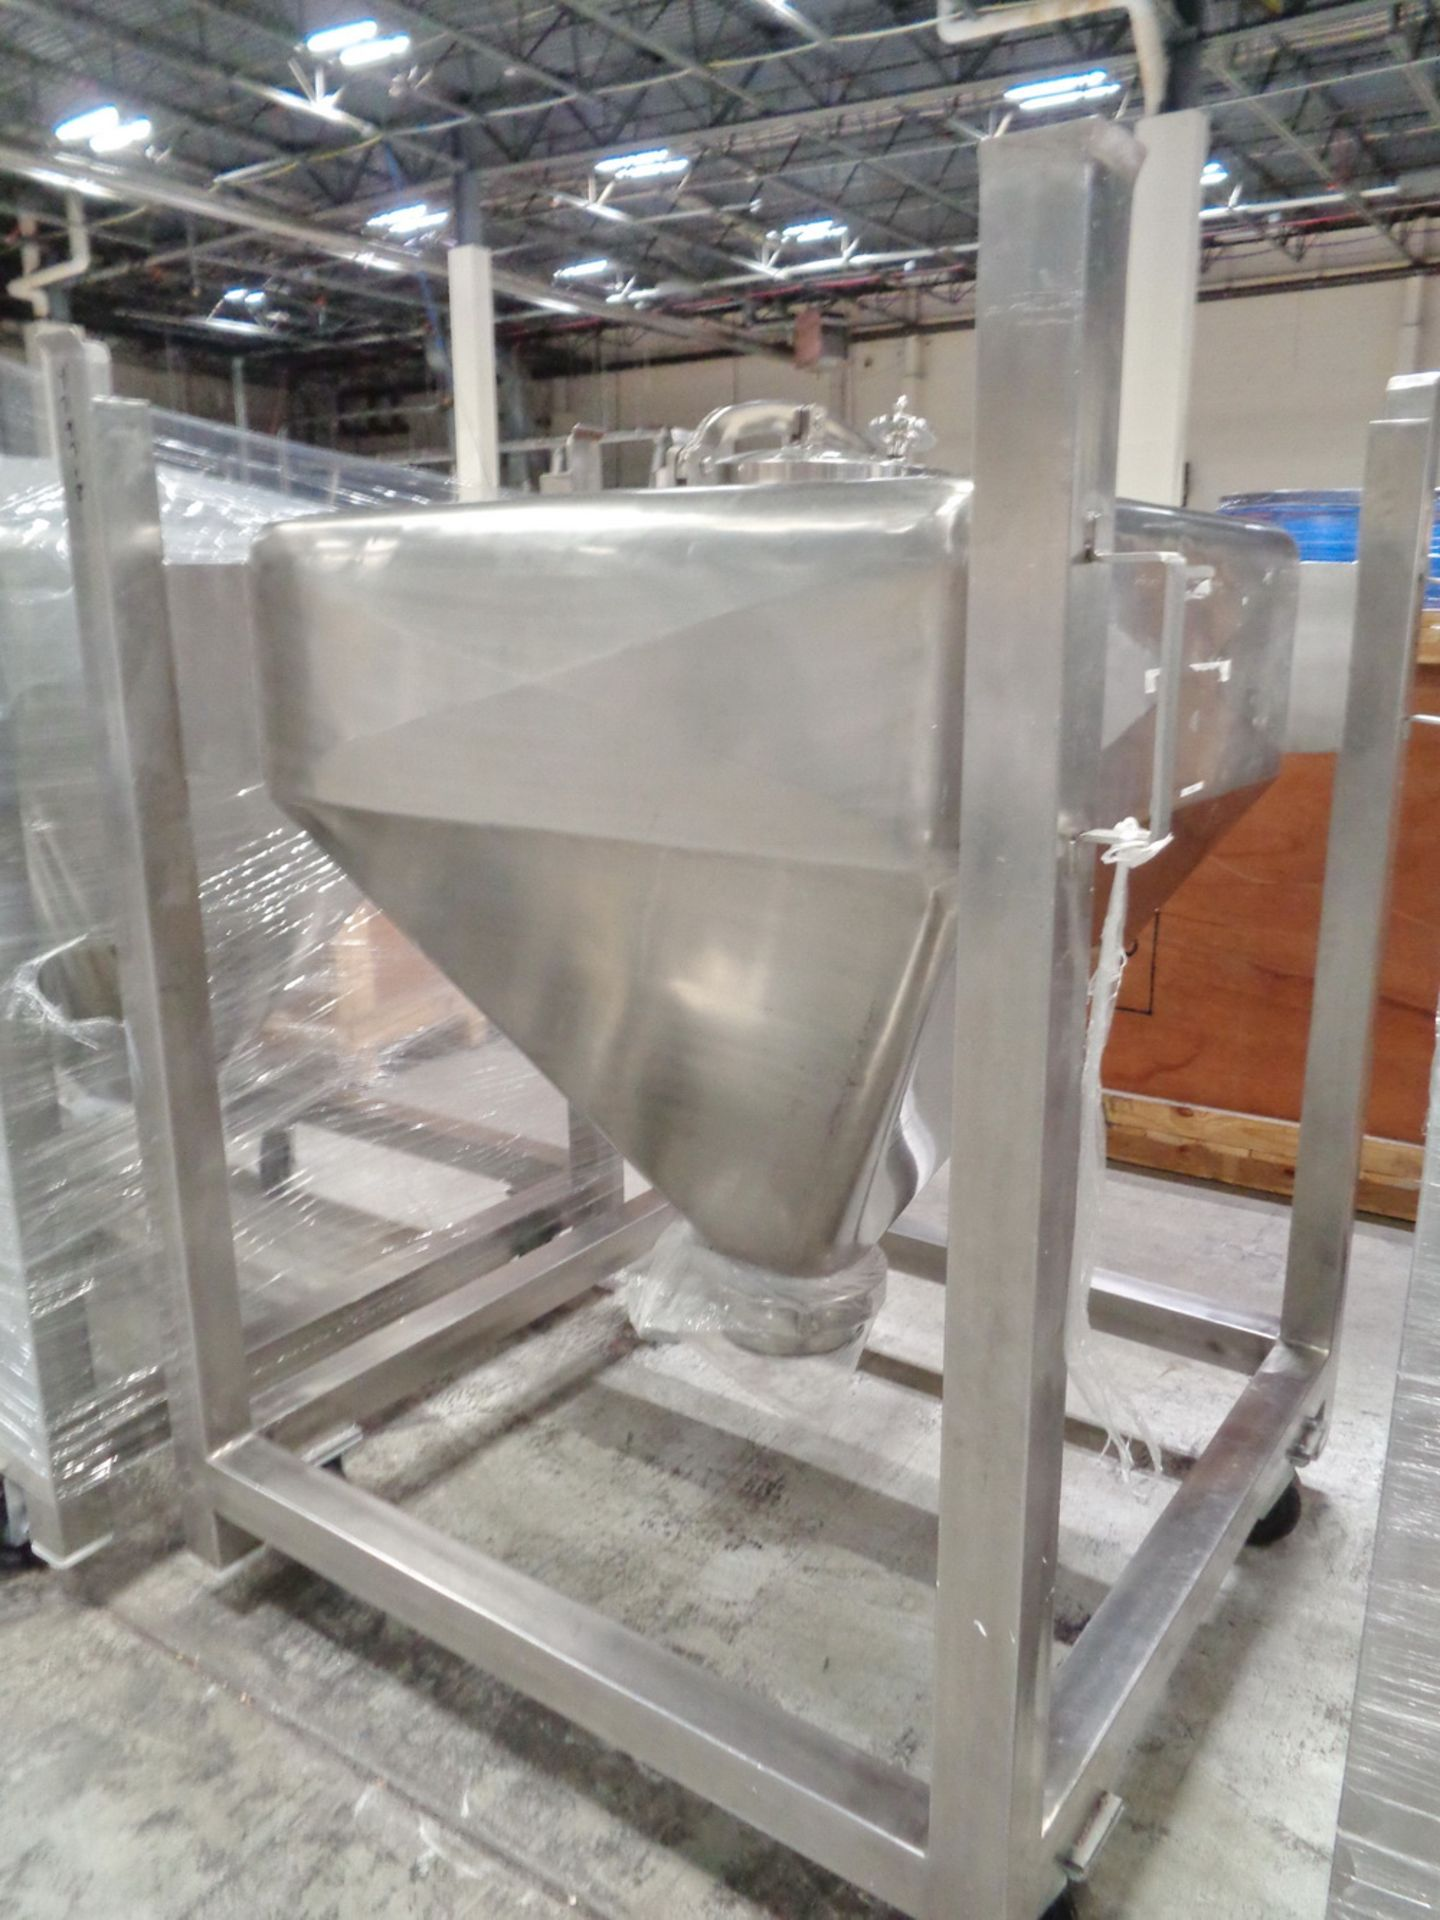 Lot 214 - SS Powder Tote, 500 Liters, no valve and no casters